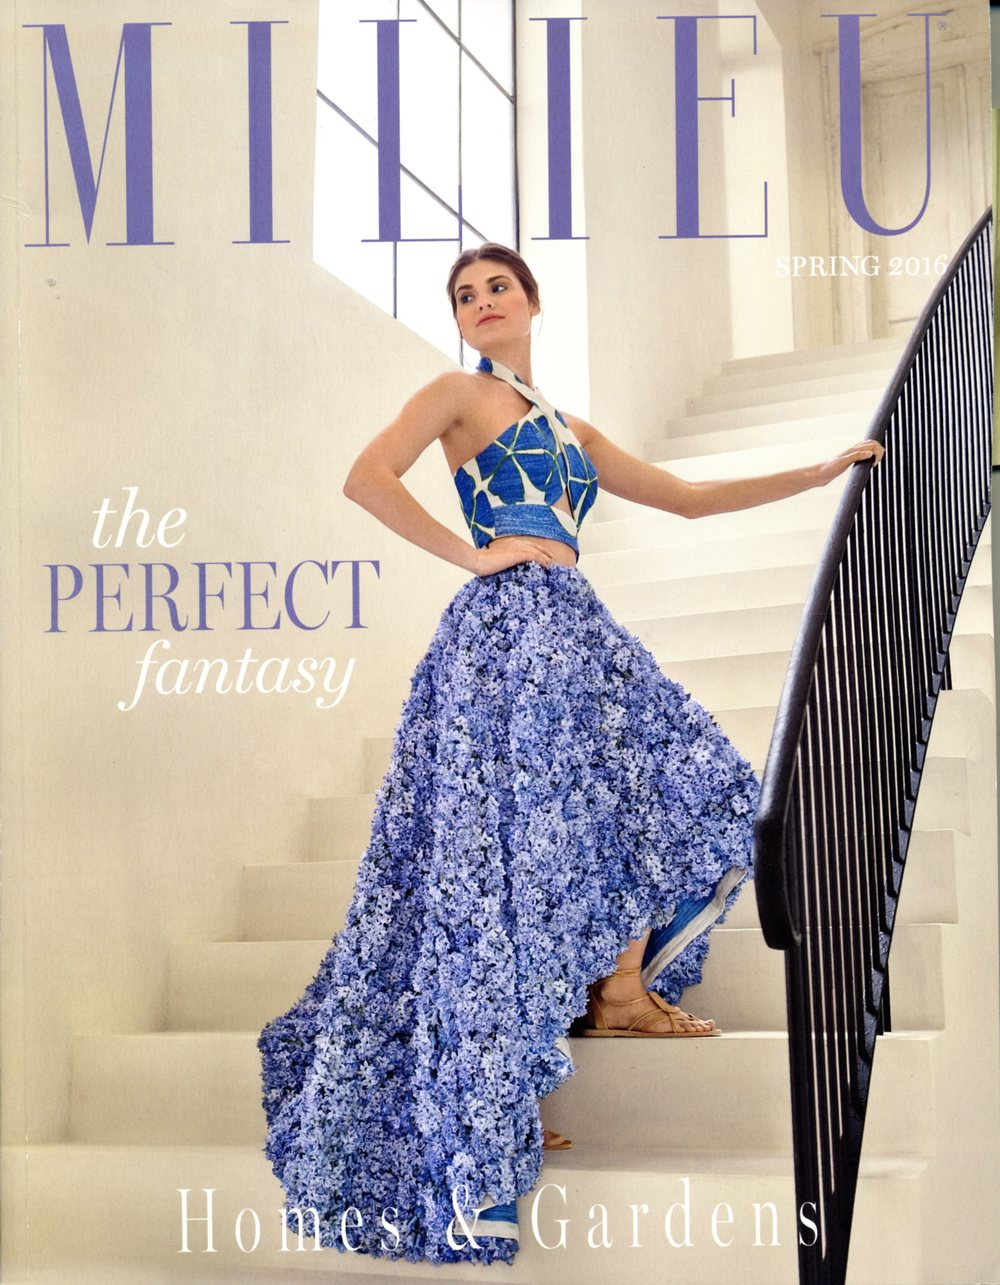 MilieuSpring2016Cover015.jpg